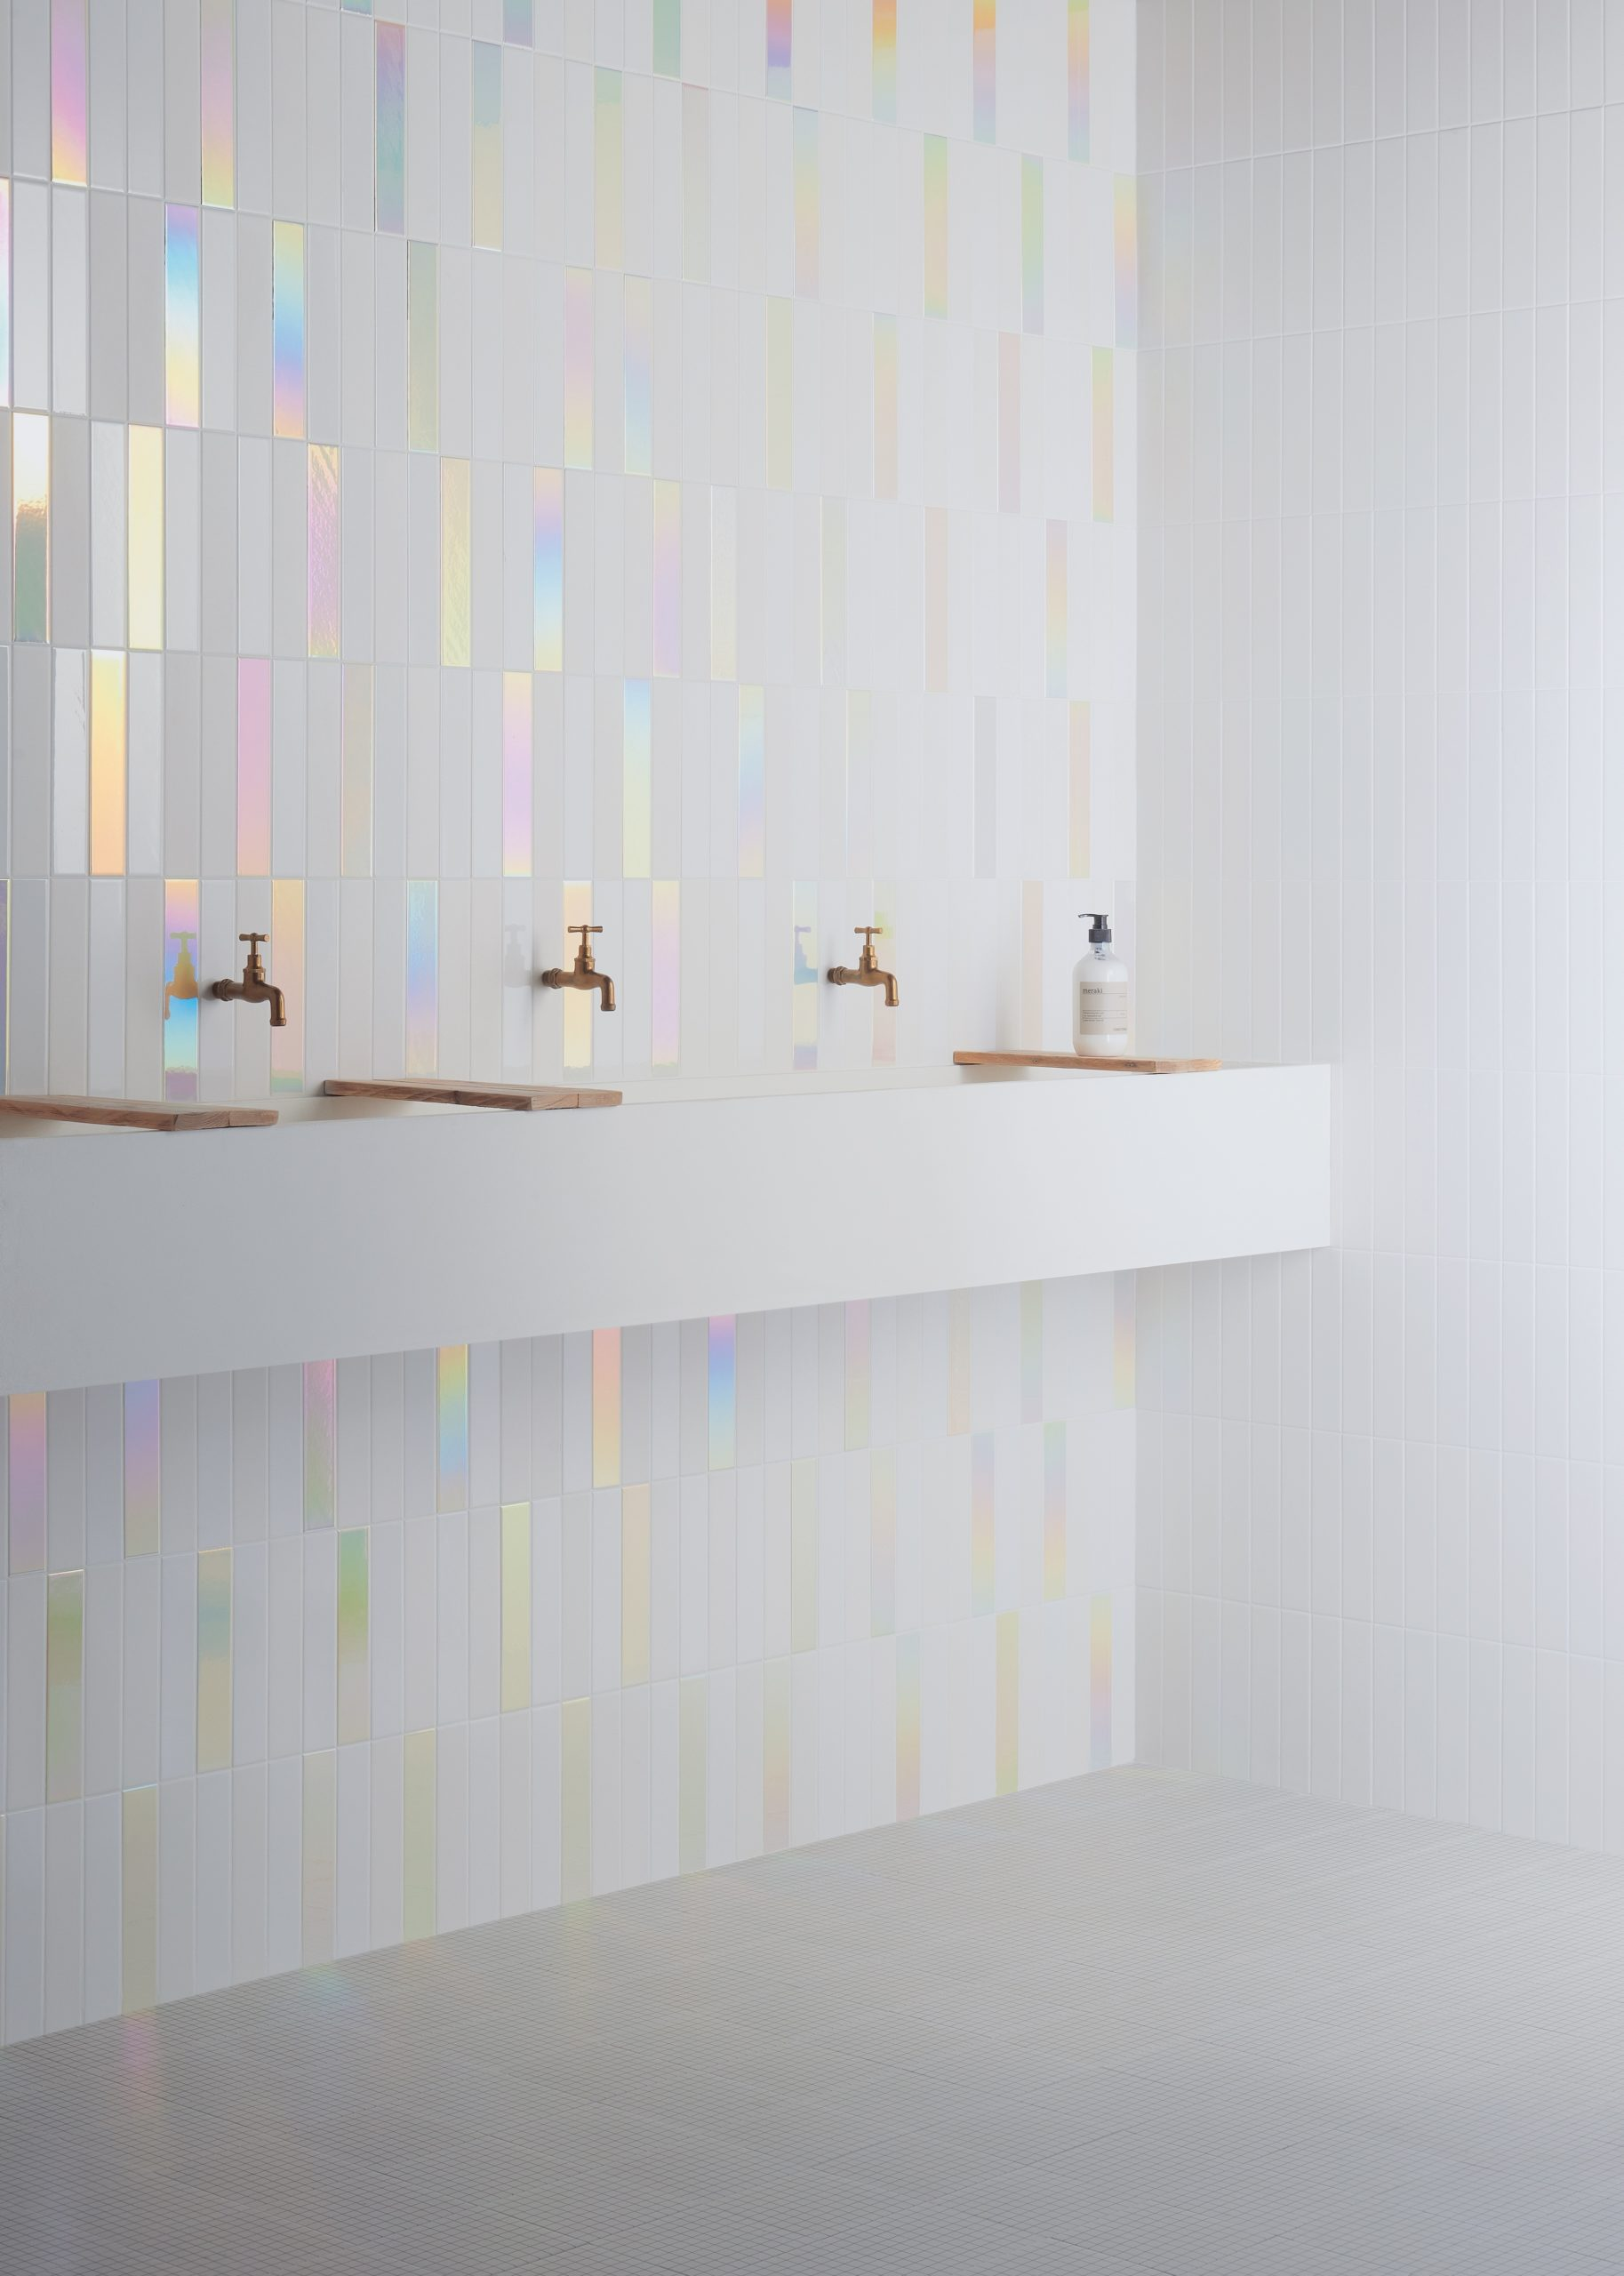 Tiles from Nemo Tile + Stone's Glow collection.